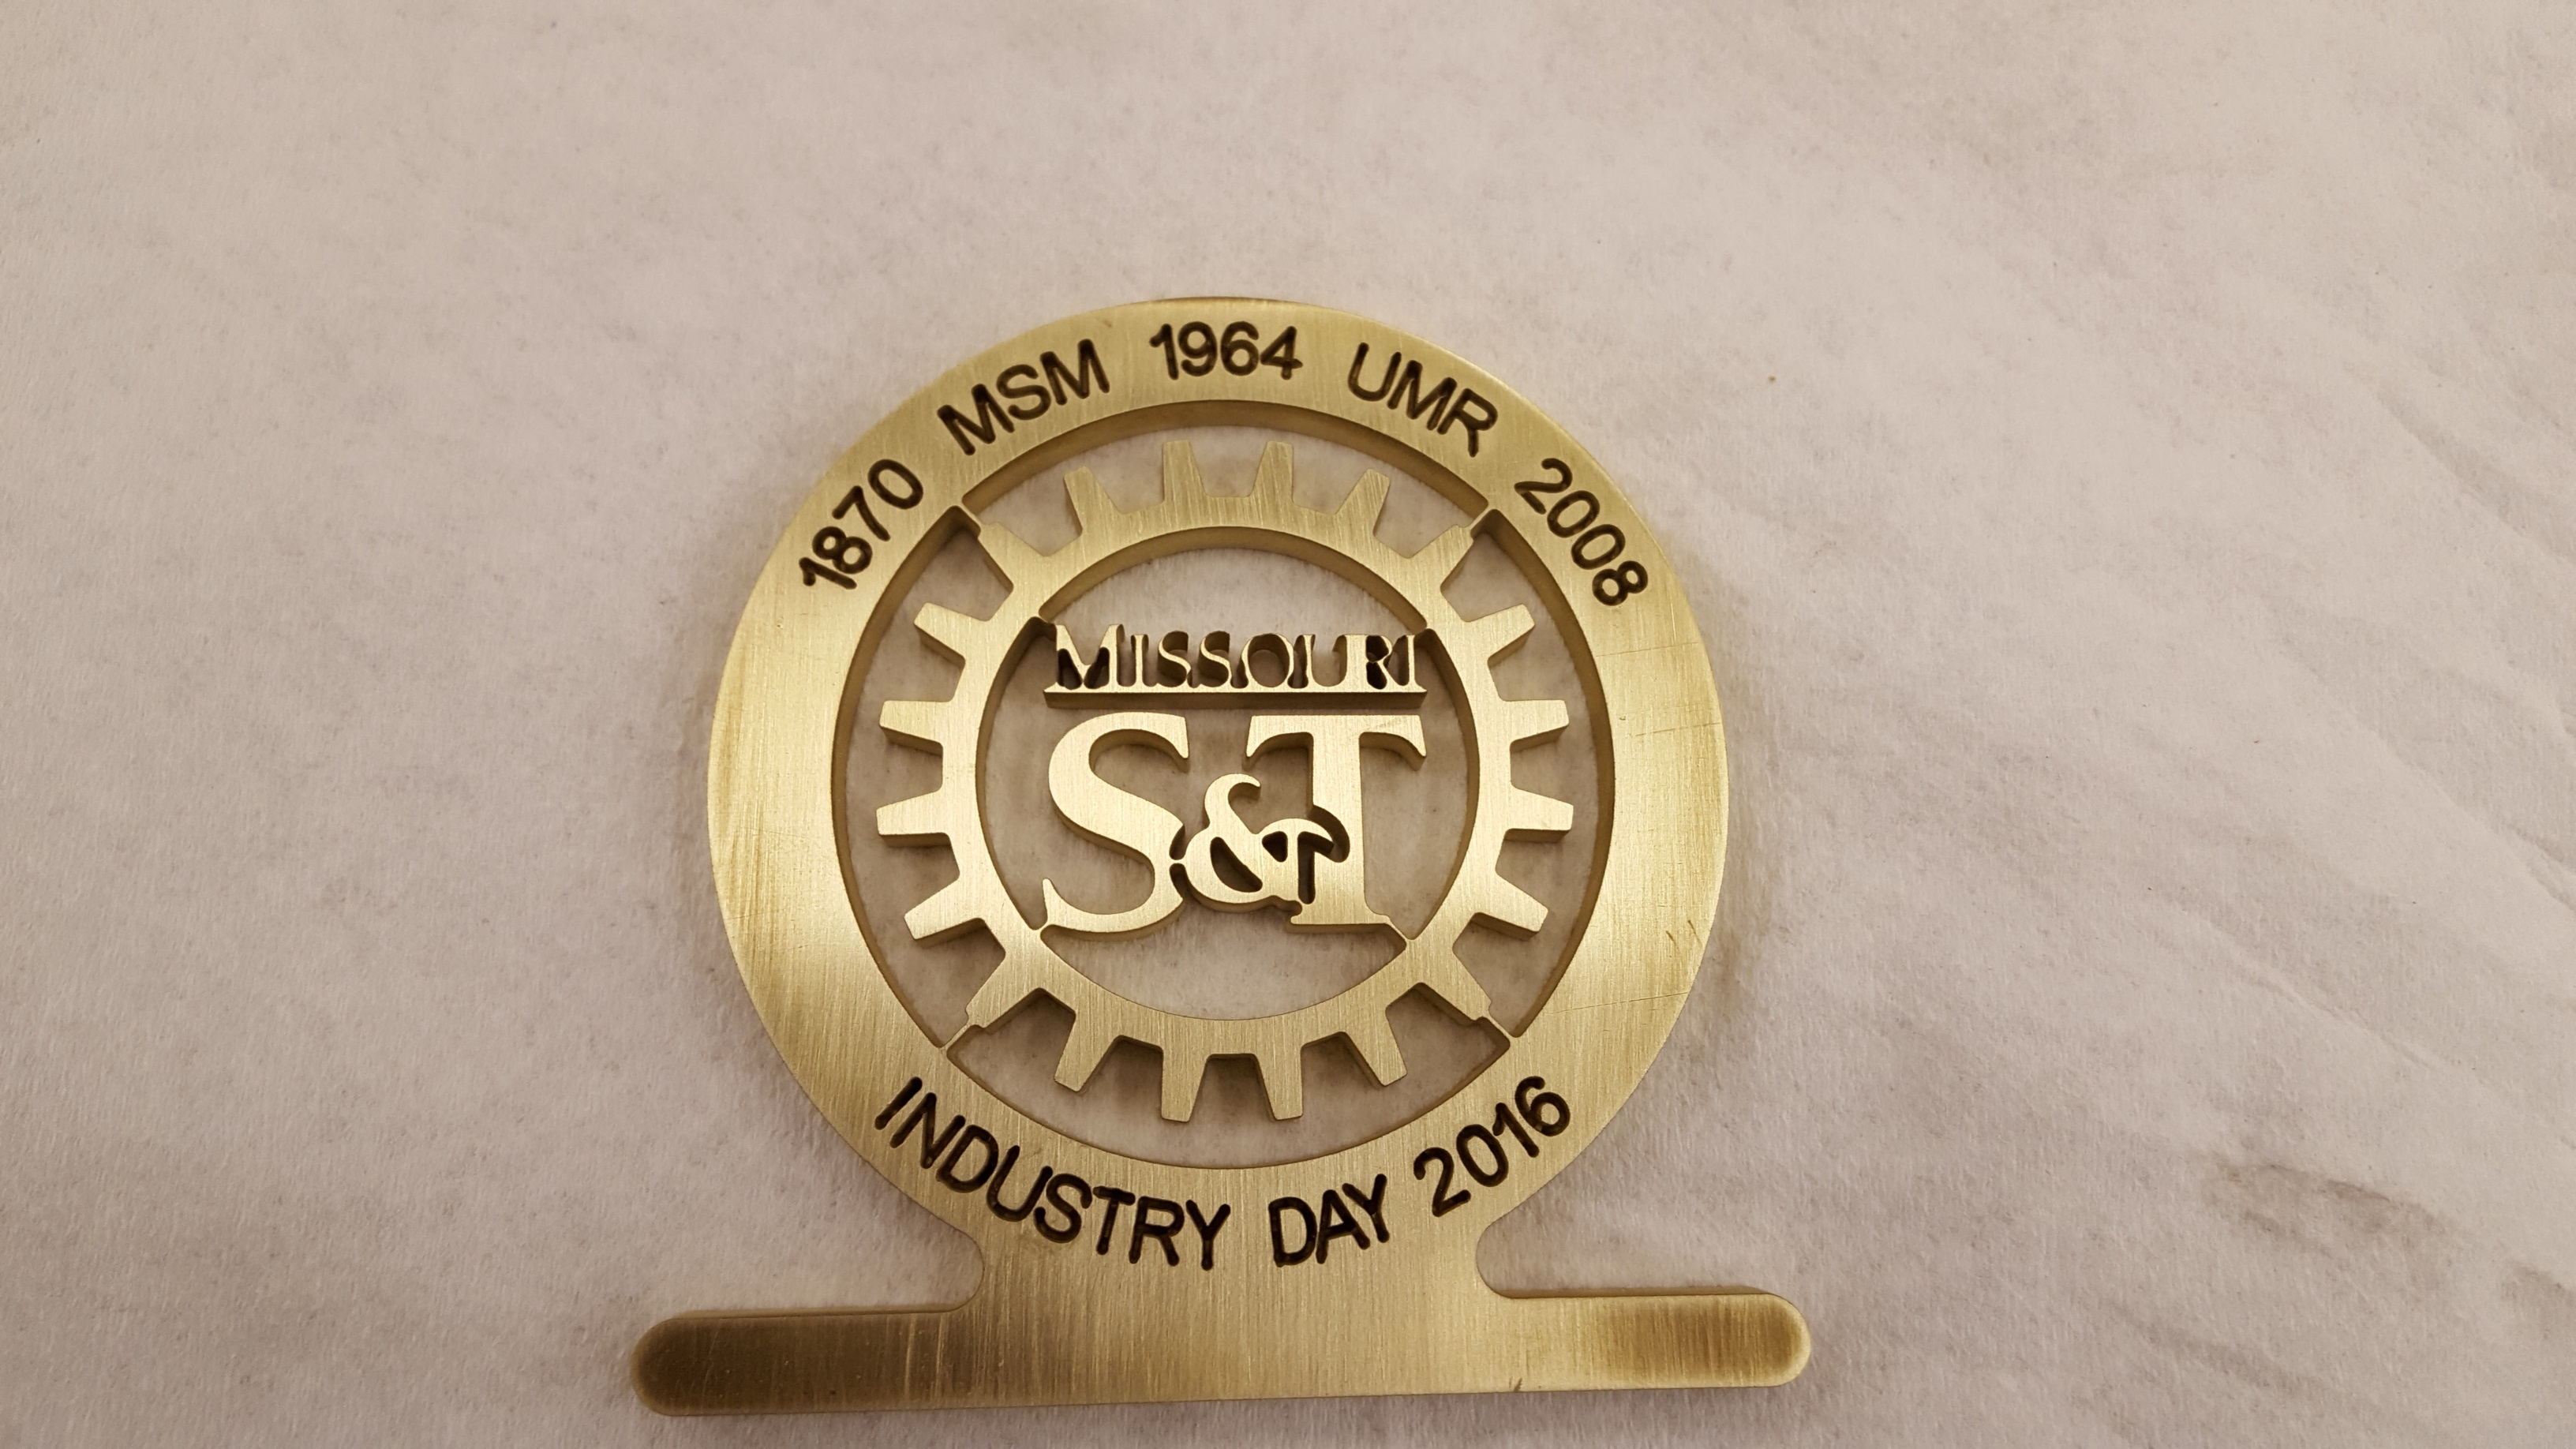 Industry Day Medallion- finished product from waterjet